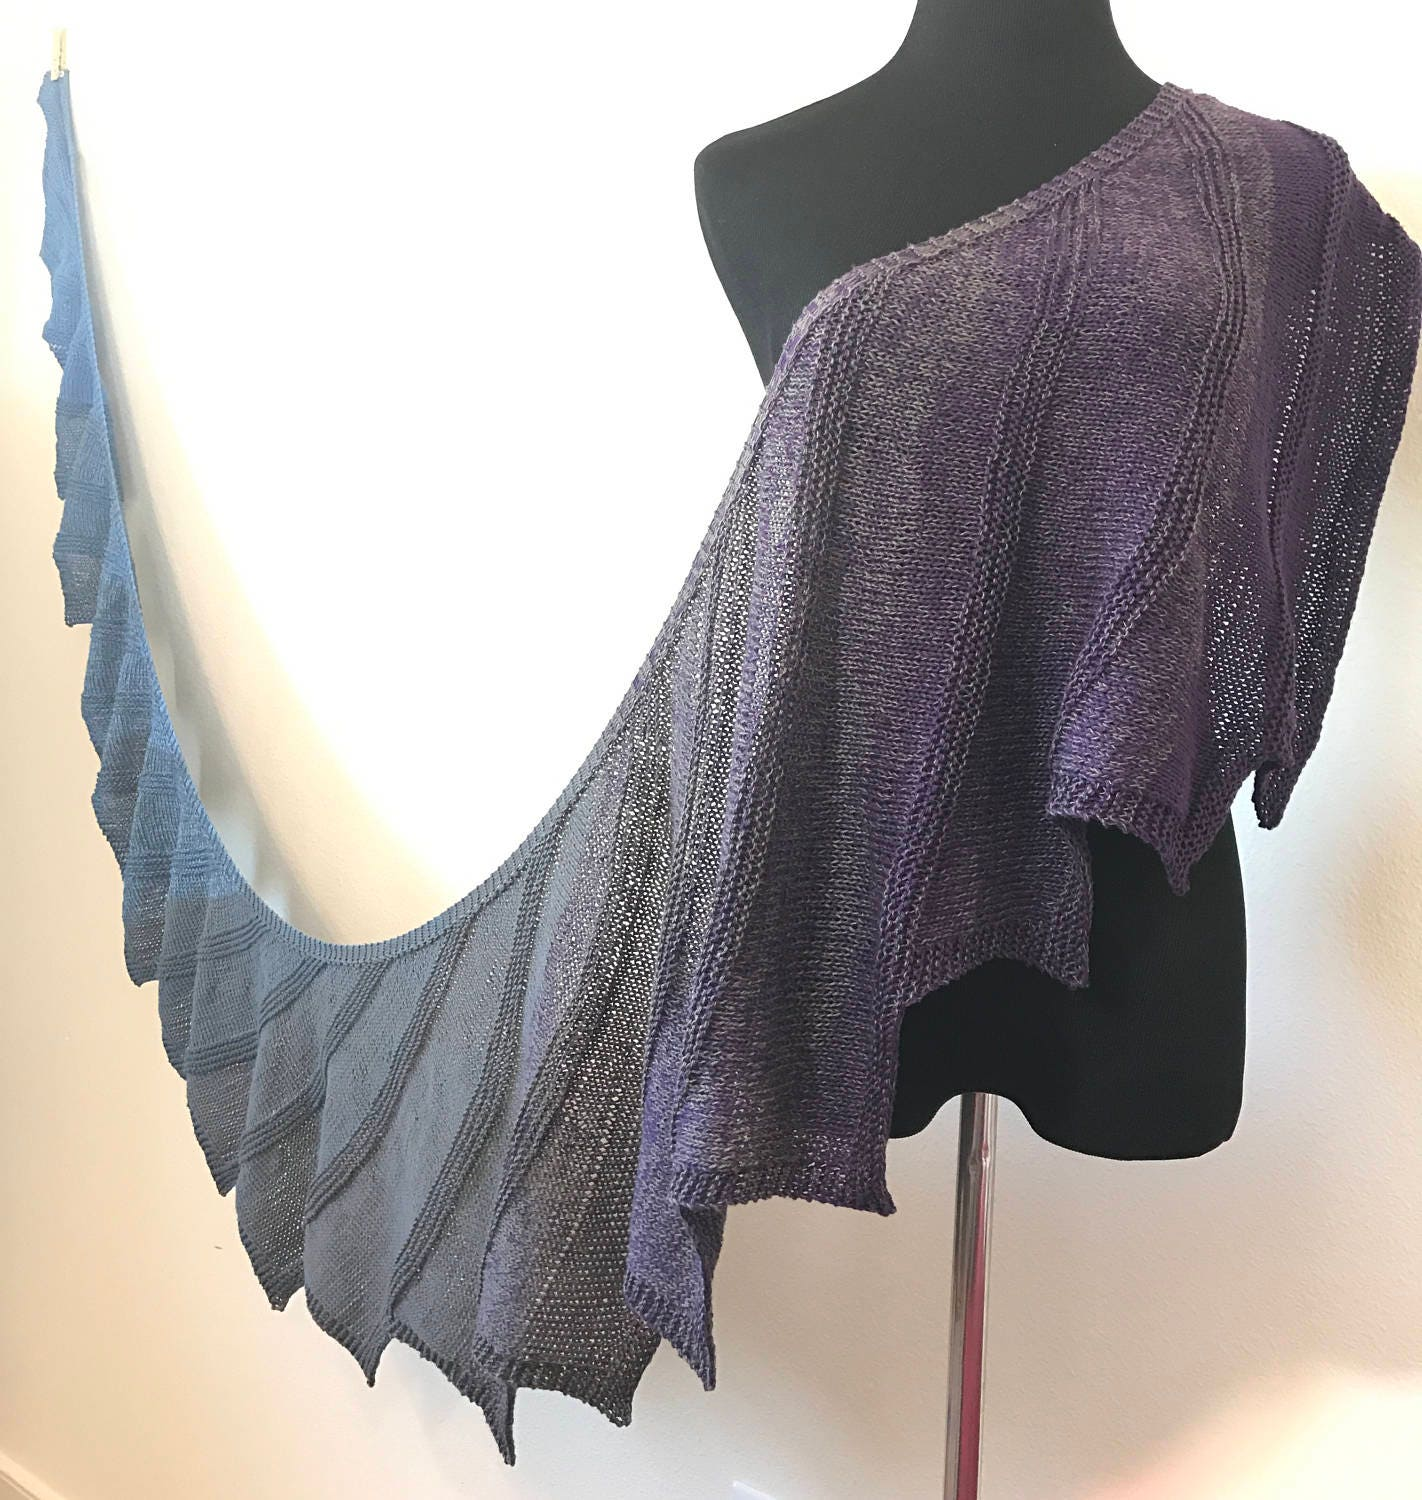 Short row knitting pattern featuring ombre gradient and variegated this is a digital file bankloansurffo Images